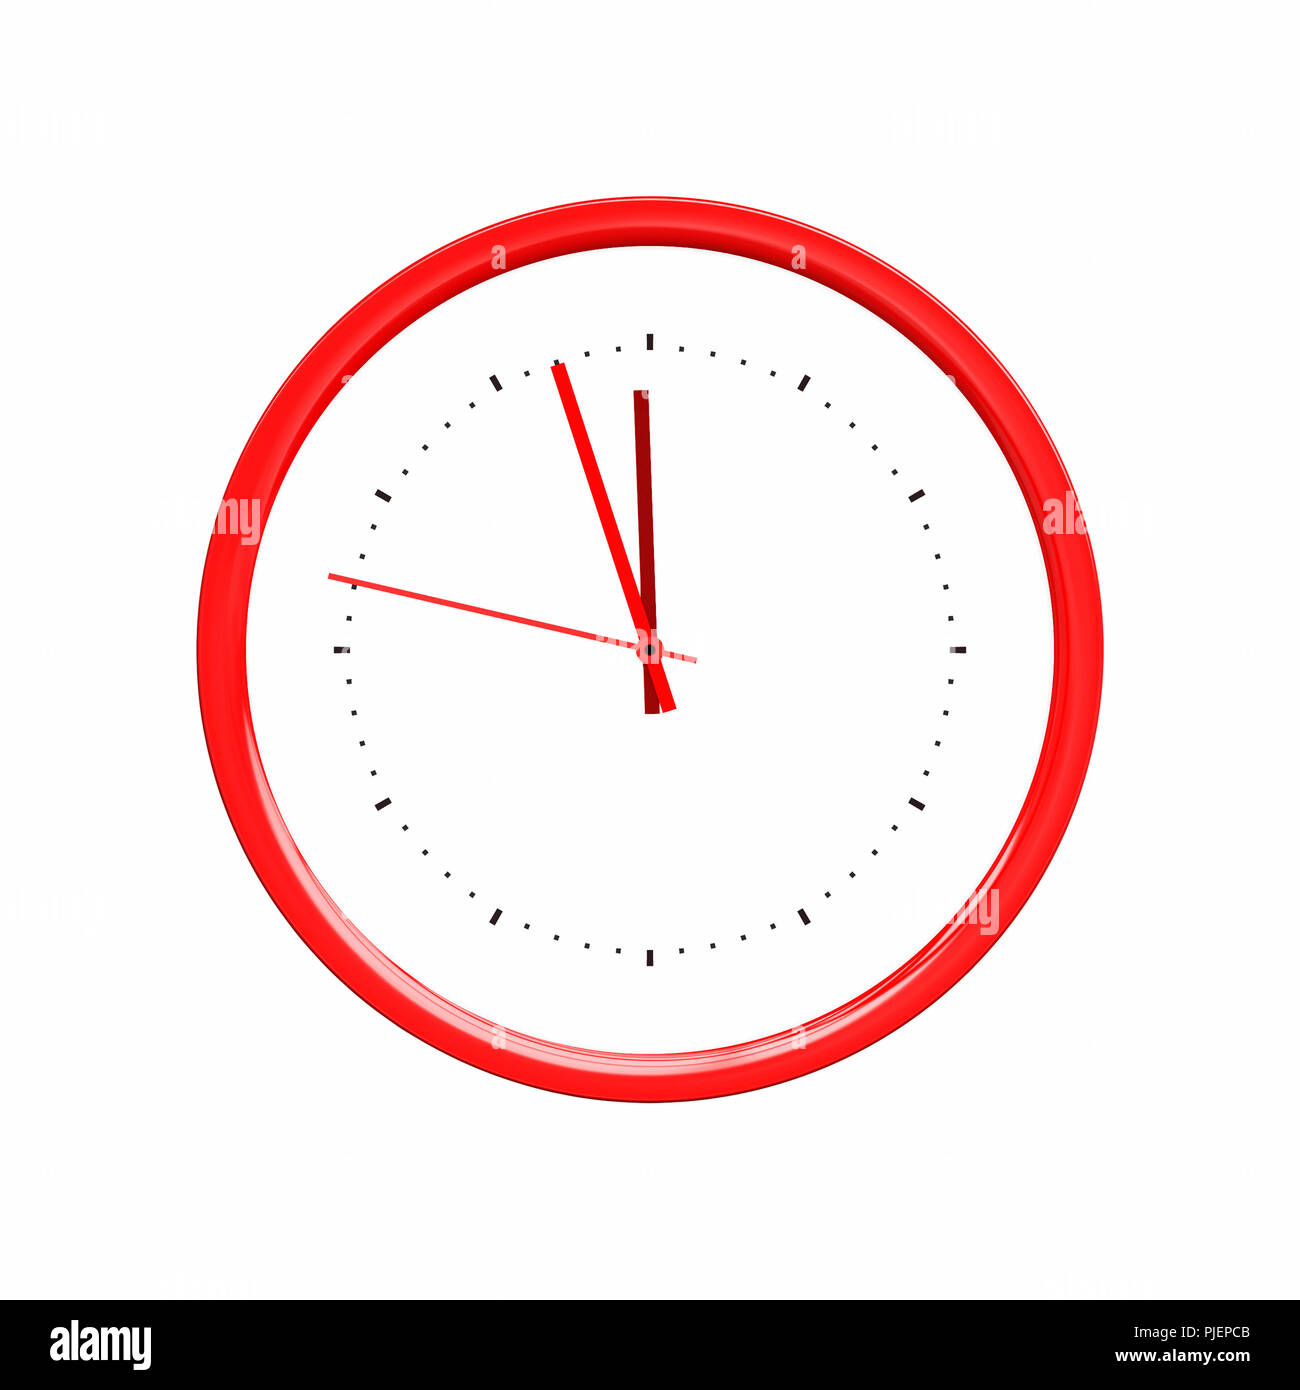 An image of a nice red clock - Stock Image